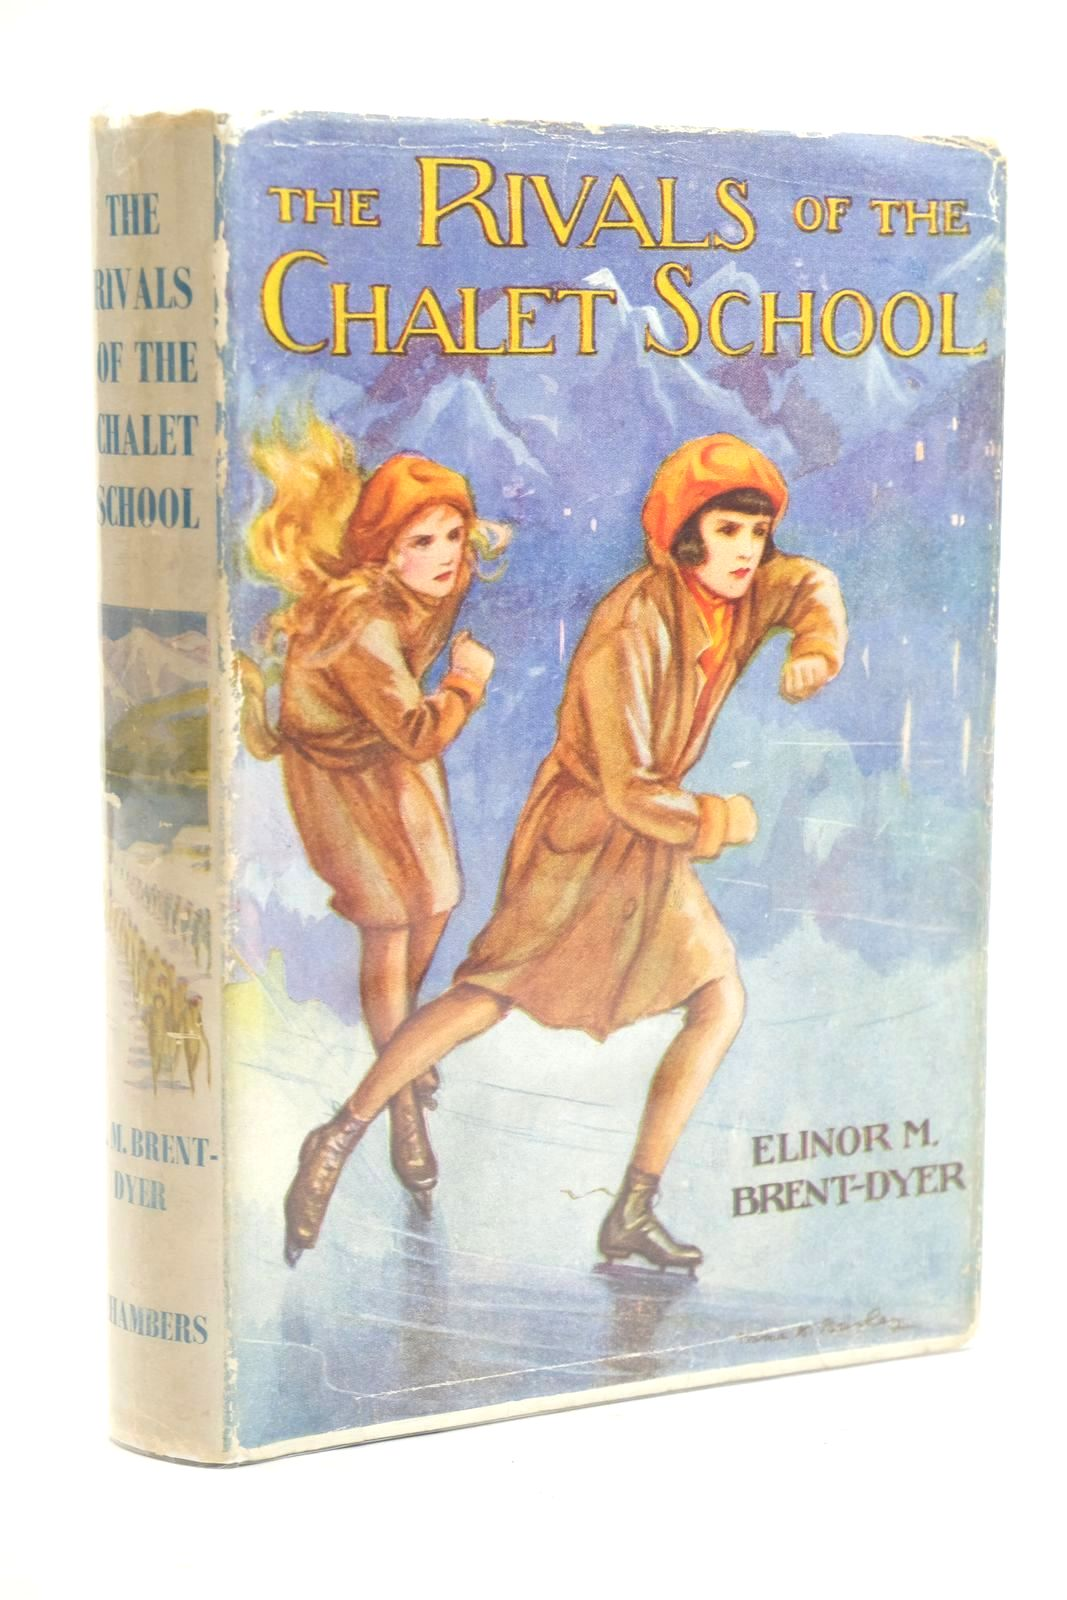 Photo of THE RIVALS OF THE CHALET SCHOOL written by Brent-Dyer, Elinor M. published by W. & R. Chambers Limited (STOCK CODE: 1320043)  for sale by Stella & Rose's Books